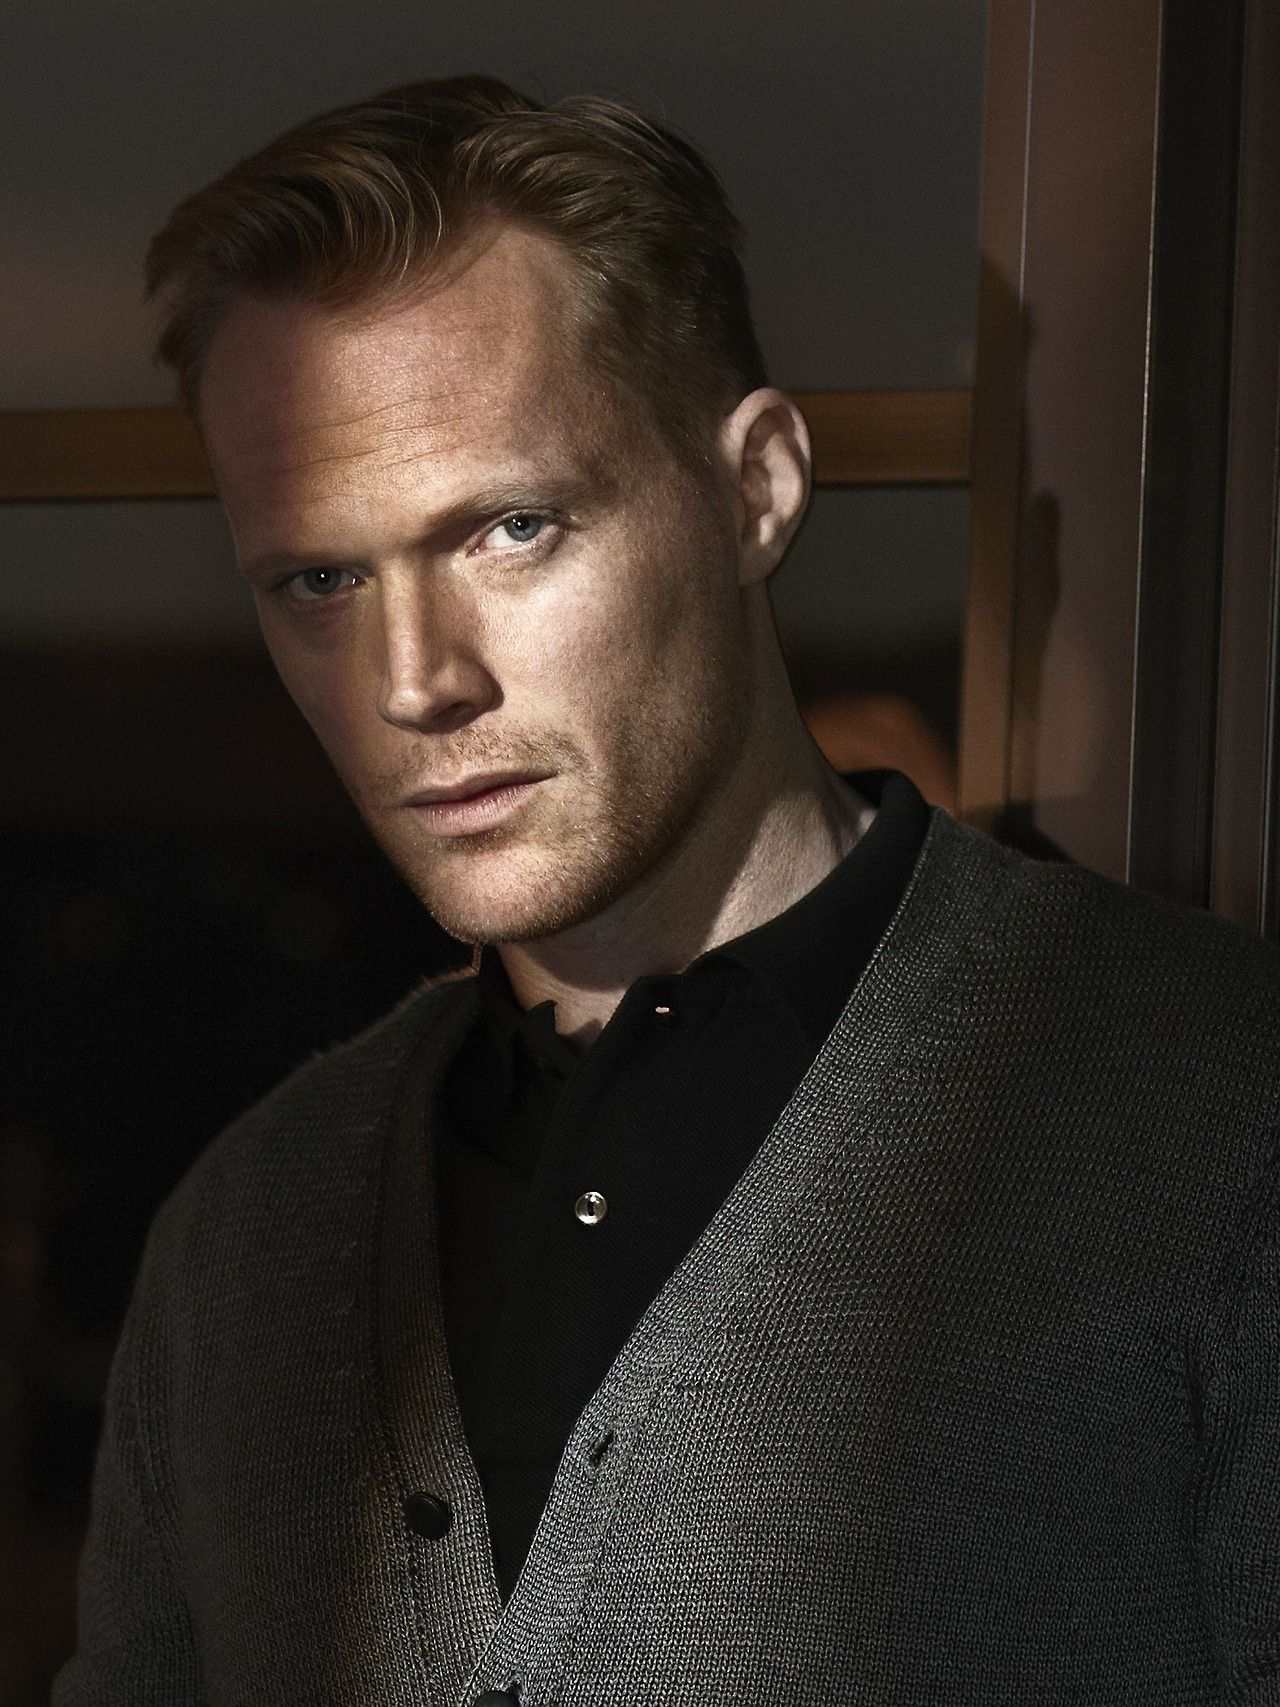 Paul Bettany: Paul Bettany. SubCategory: Cardigan Kink Activated.